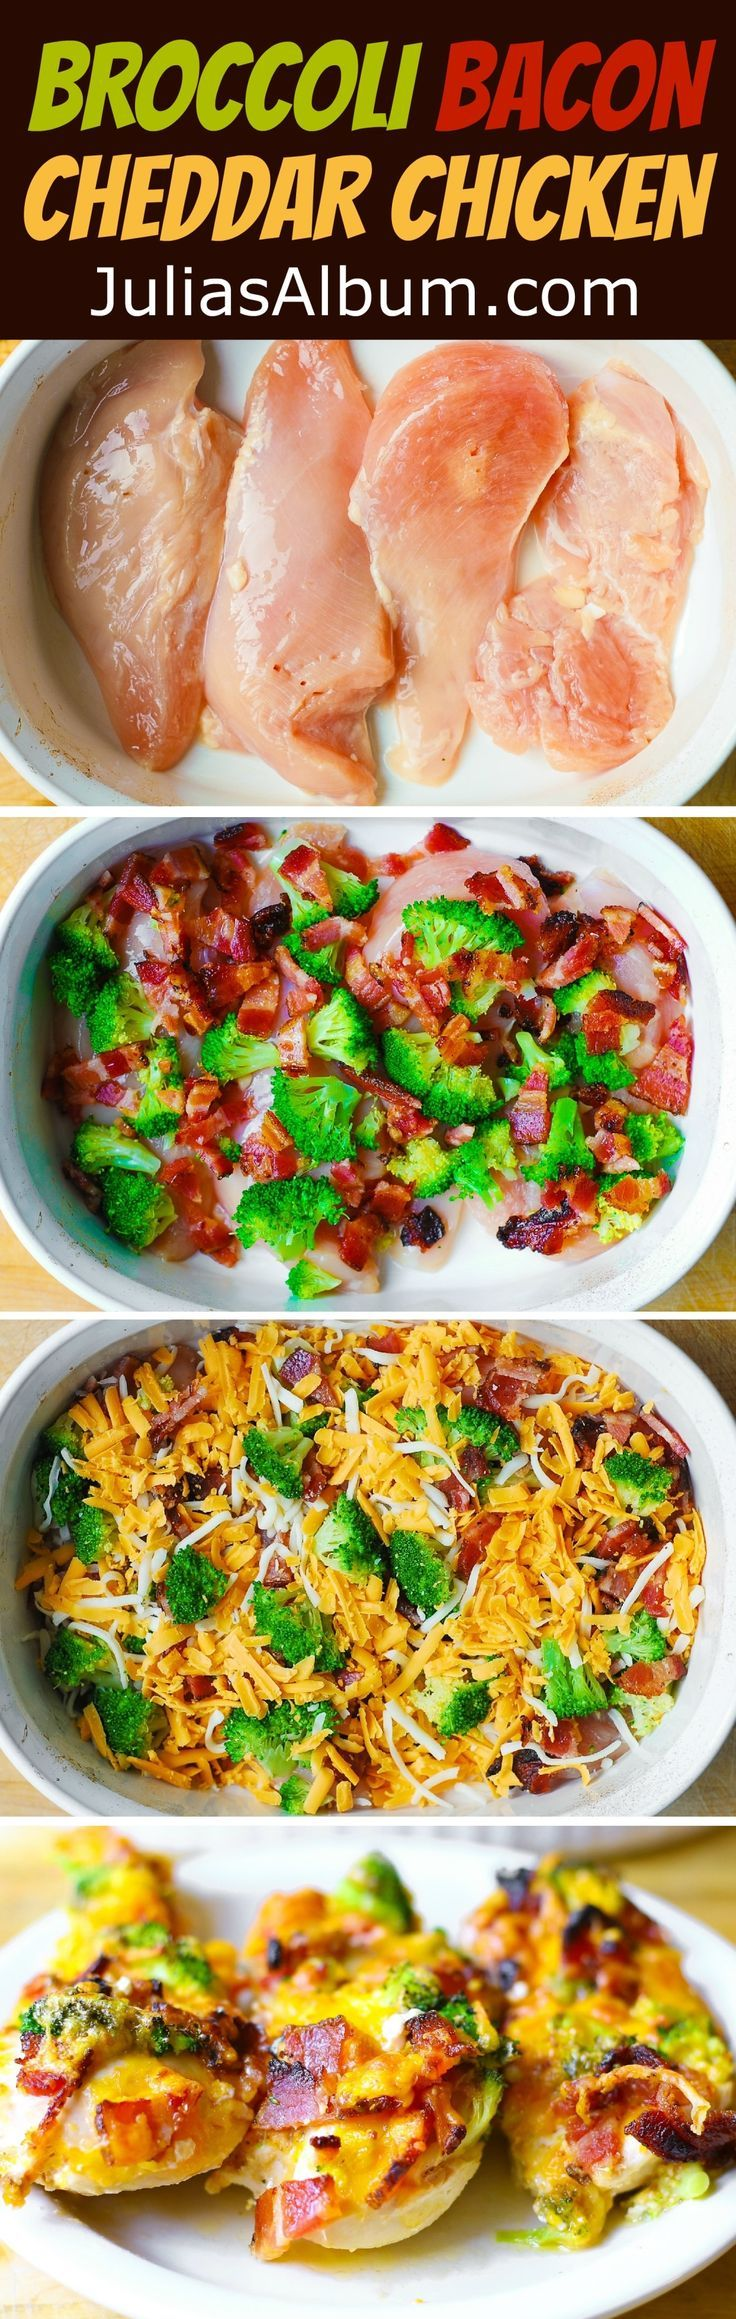 Baked Broccoli Bacon Cheddar Chicken Breasts  Low Carb -2941